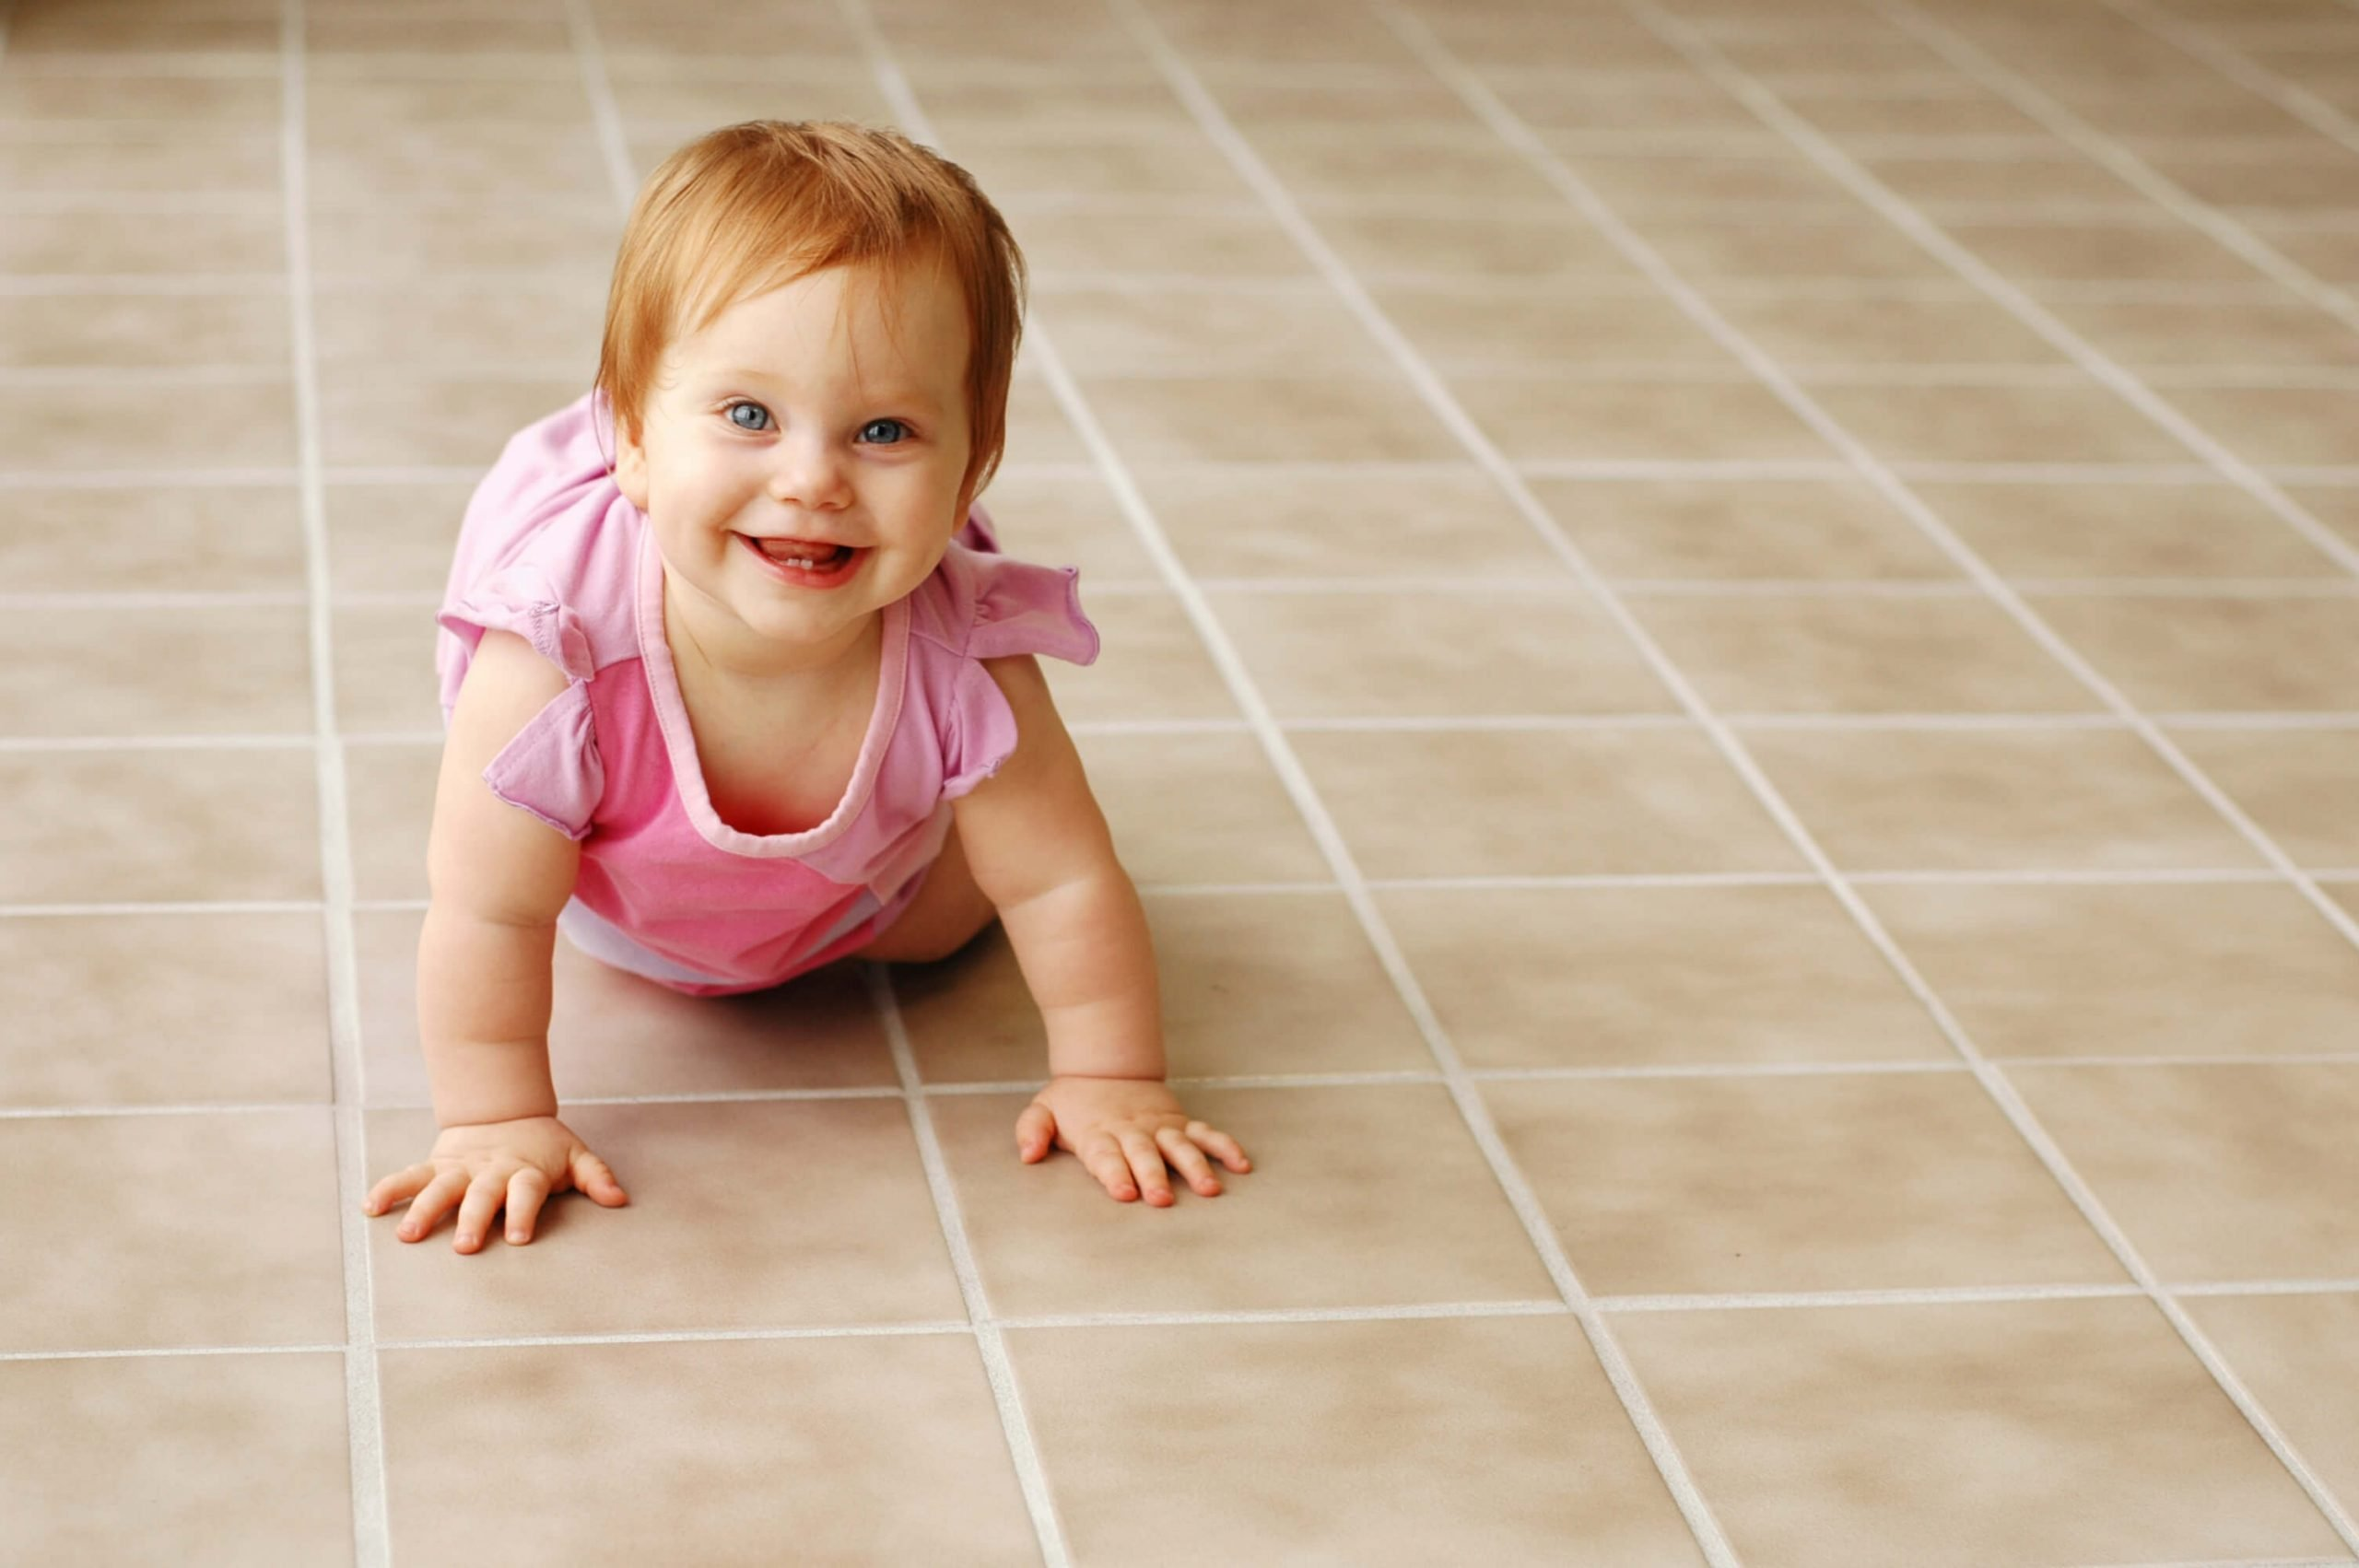 baby crawling on kitchen tile floor